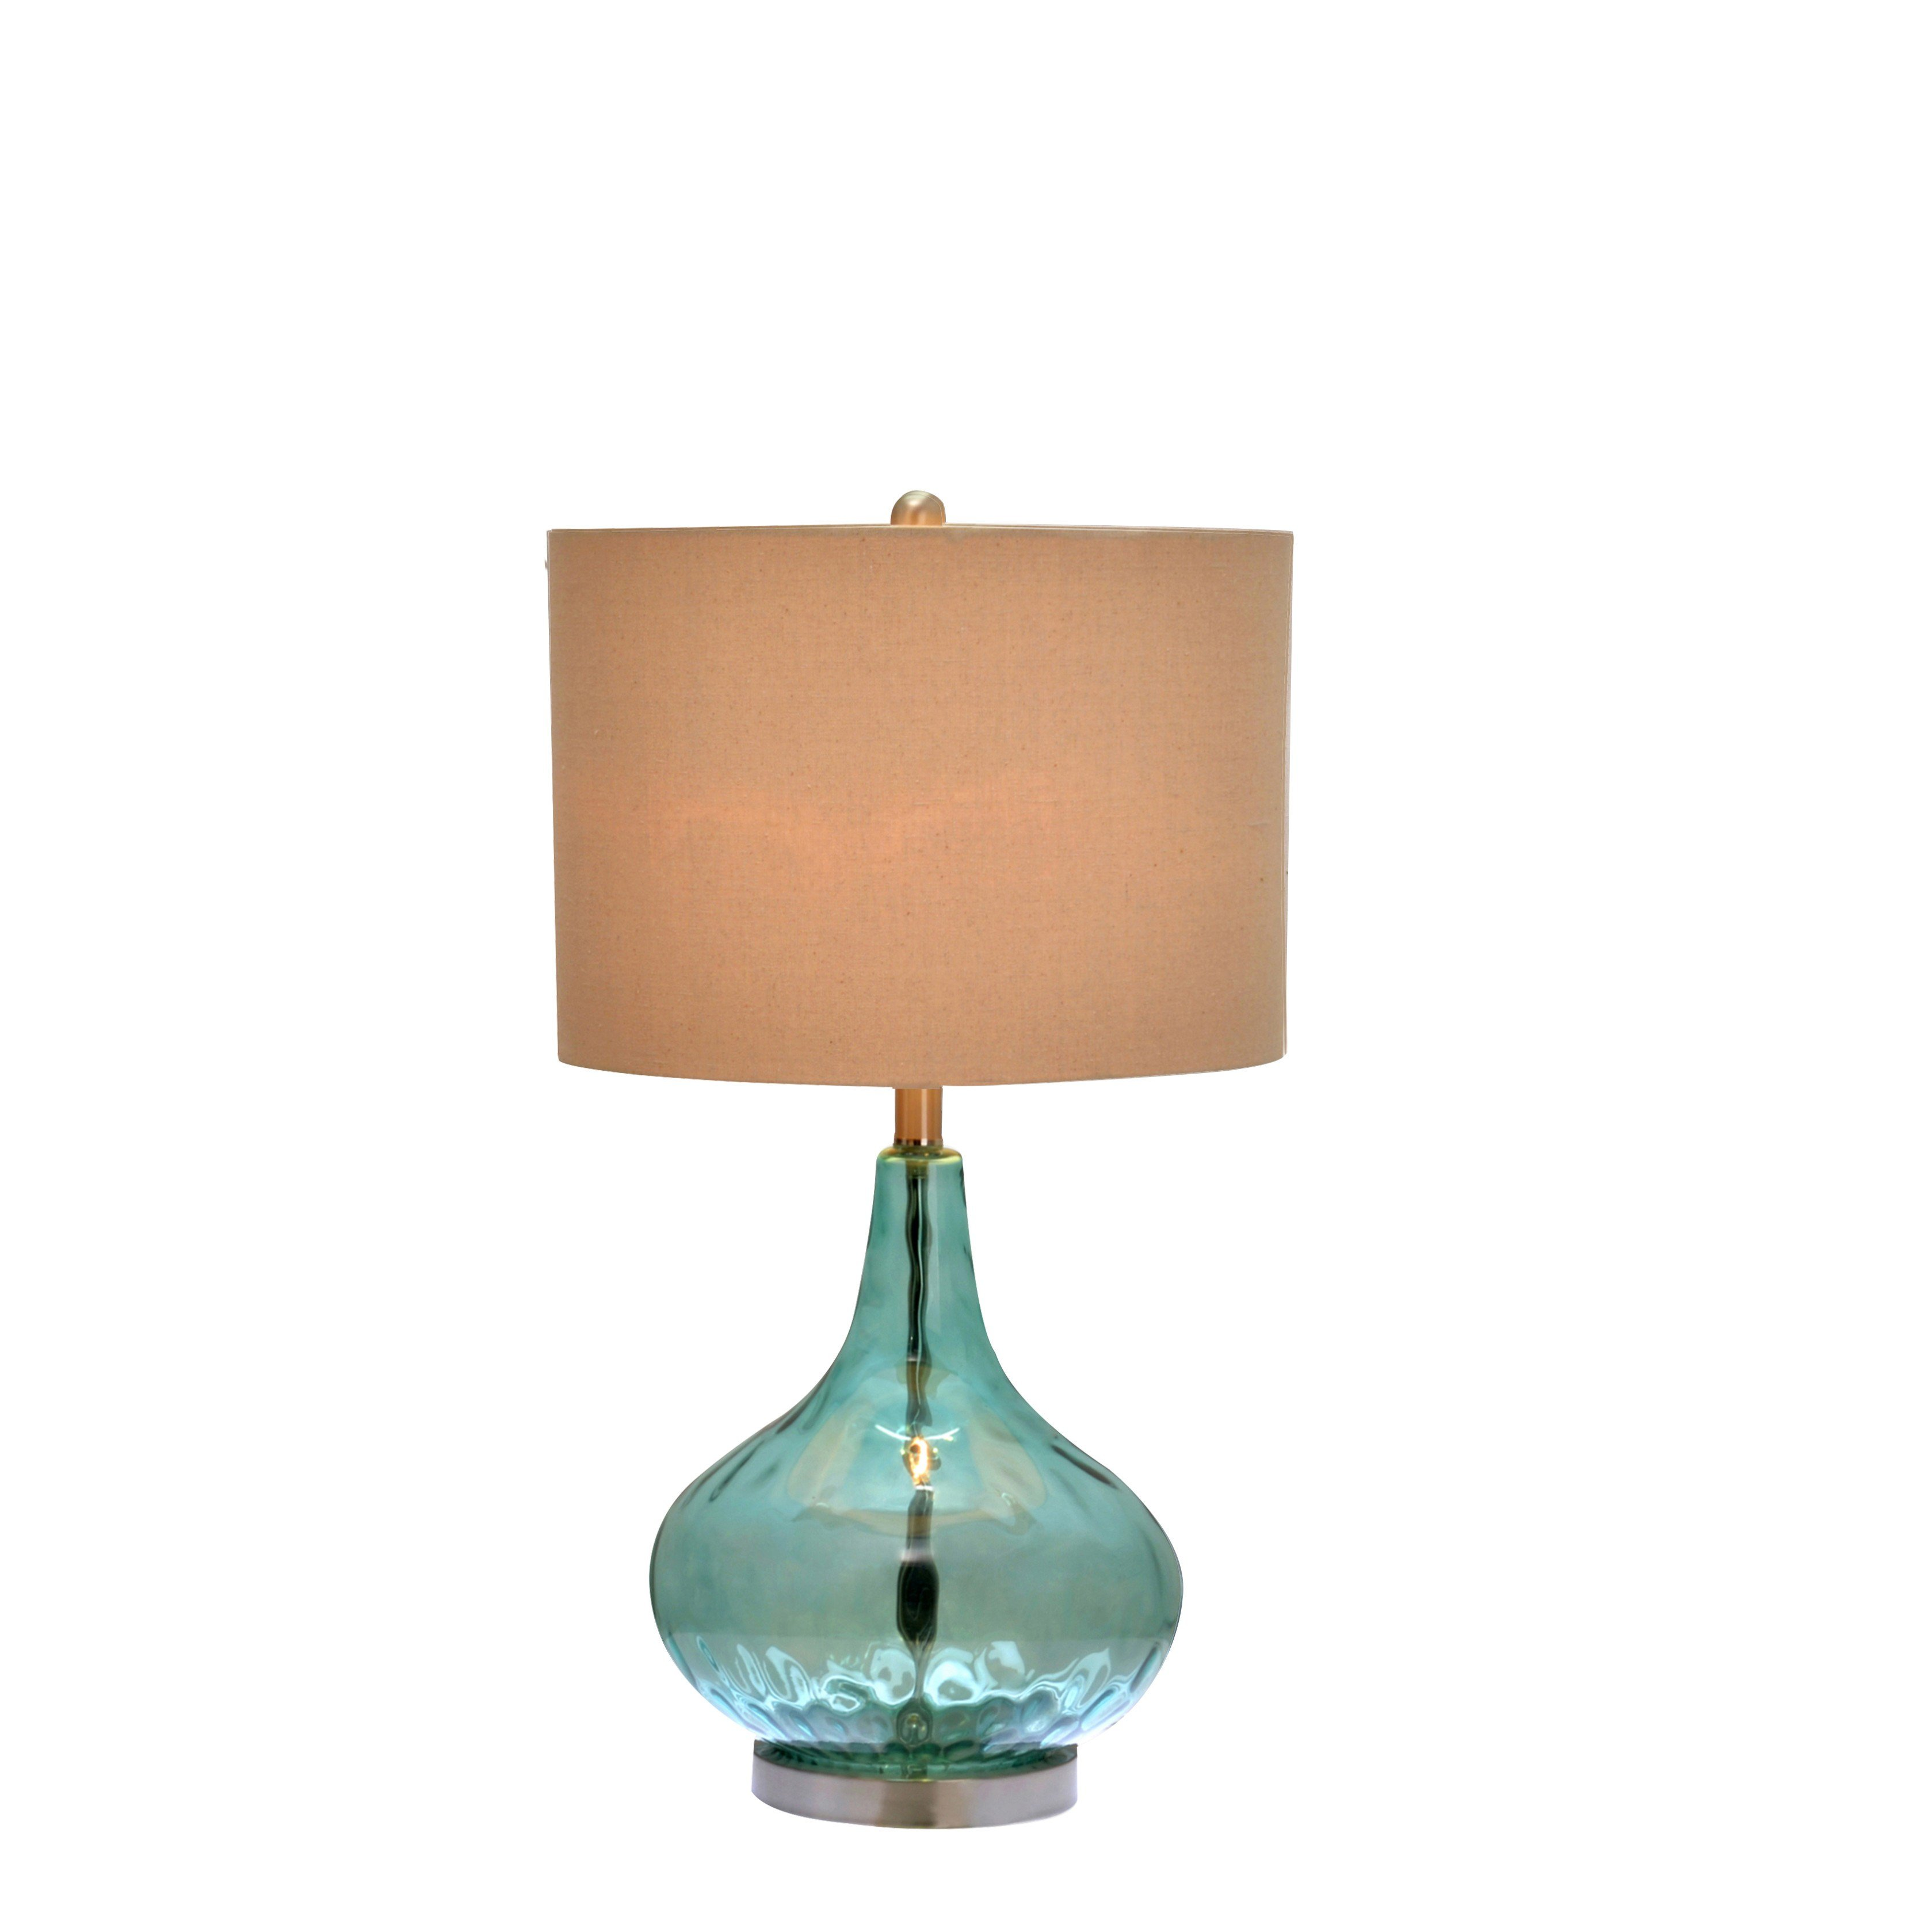 Best Crystal Side Table Lamps With For Bedroom Also Lamp Trends With Pictures